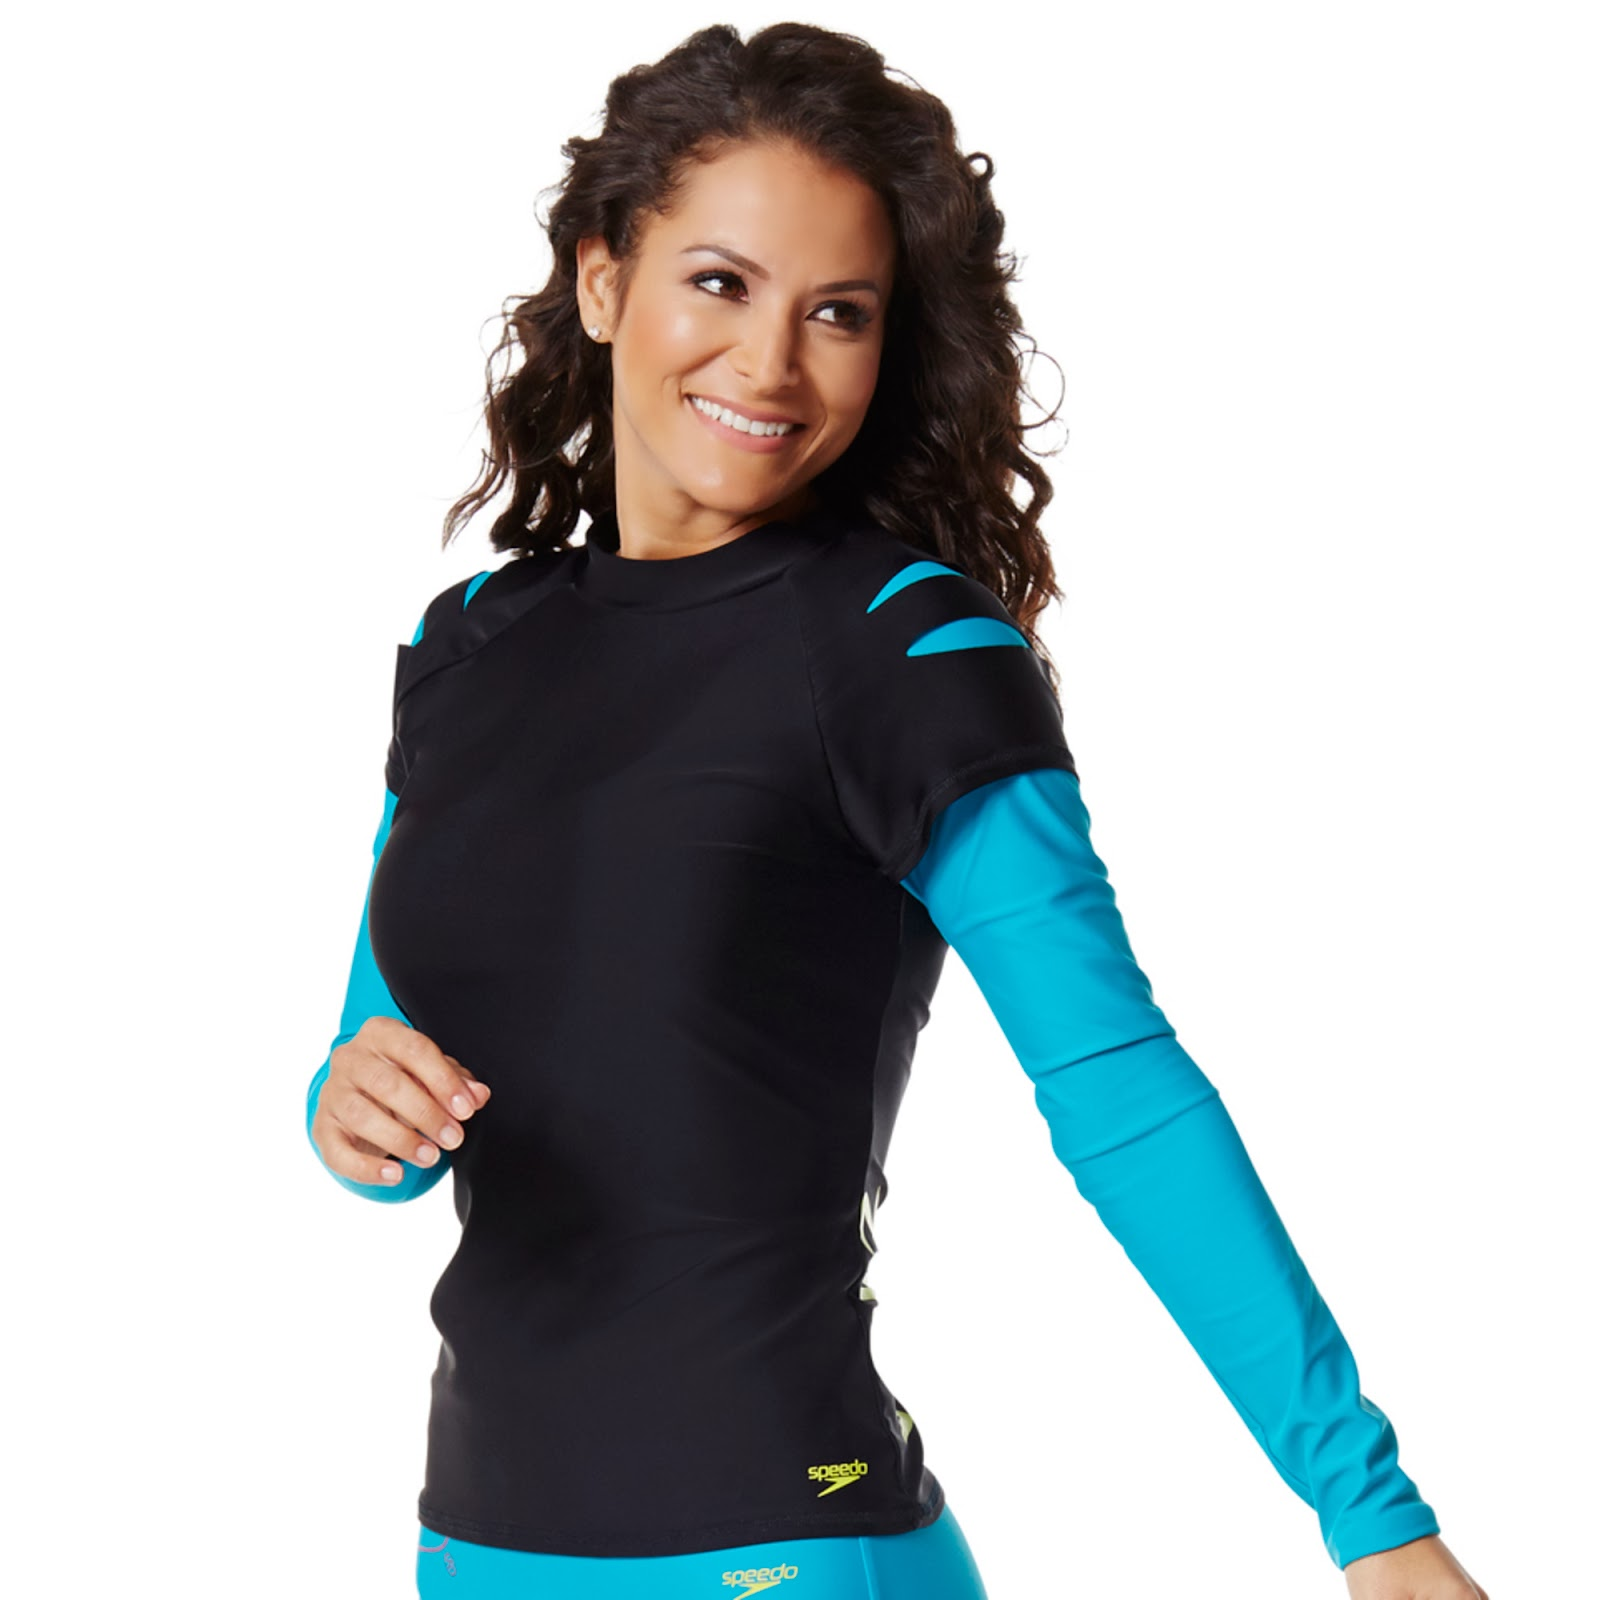 http://www.zumba.com/en-US/store-zin/US/product/slash-o-rama-rashguard?color=Black